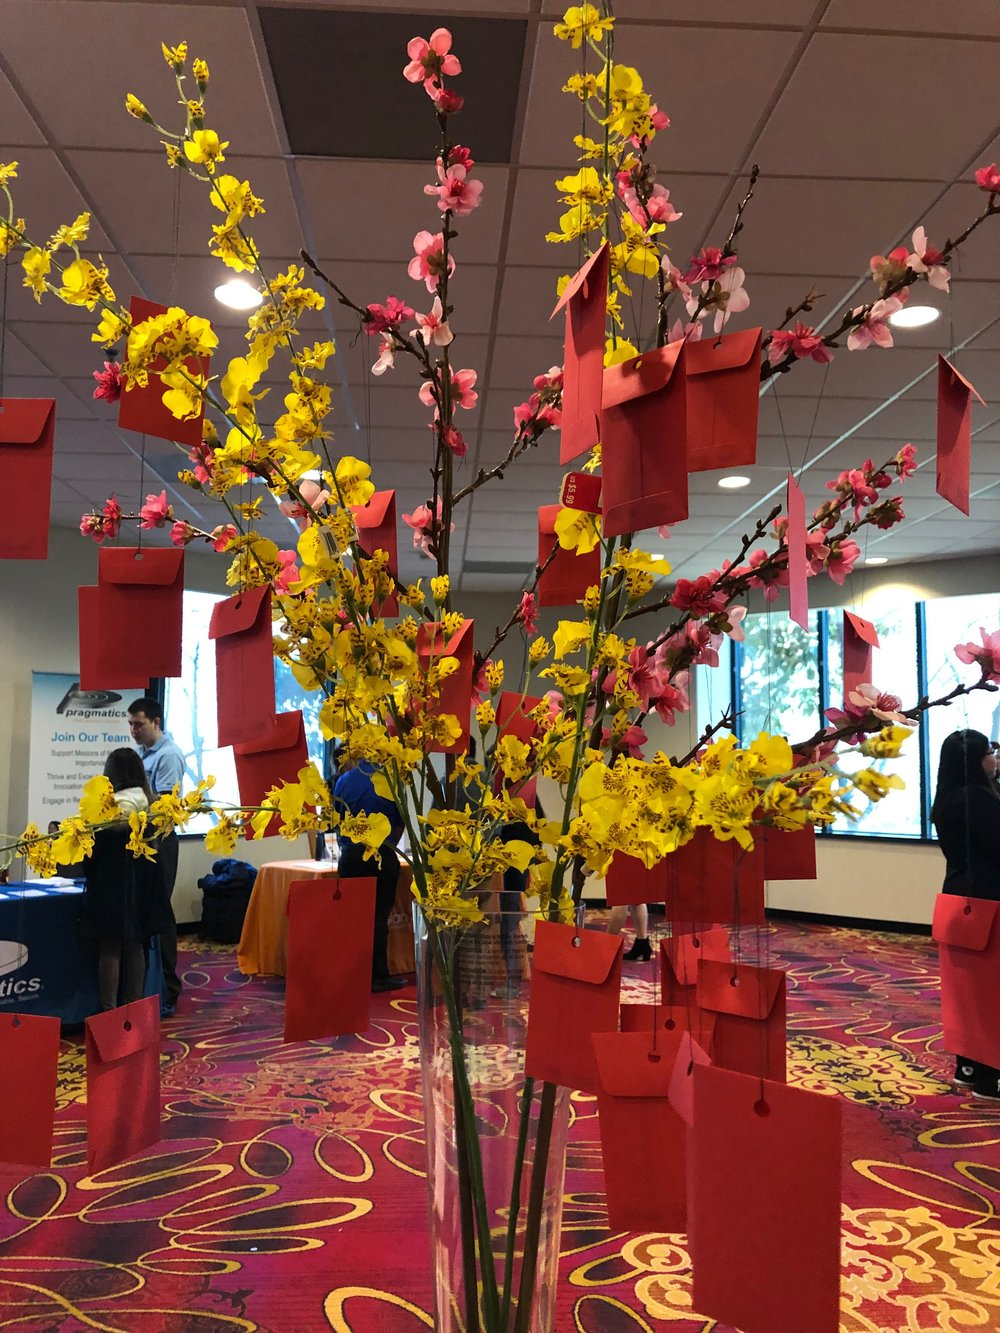 Our hilarious wishing tree with nearly 50 wishes! (Courtesy: the awesome suppliers at Michaels).